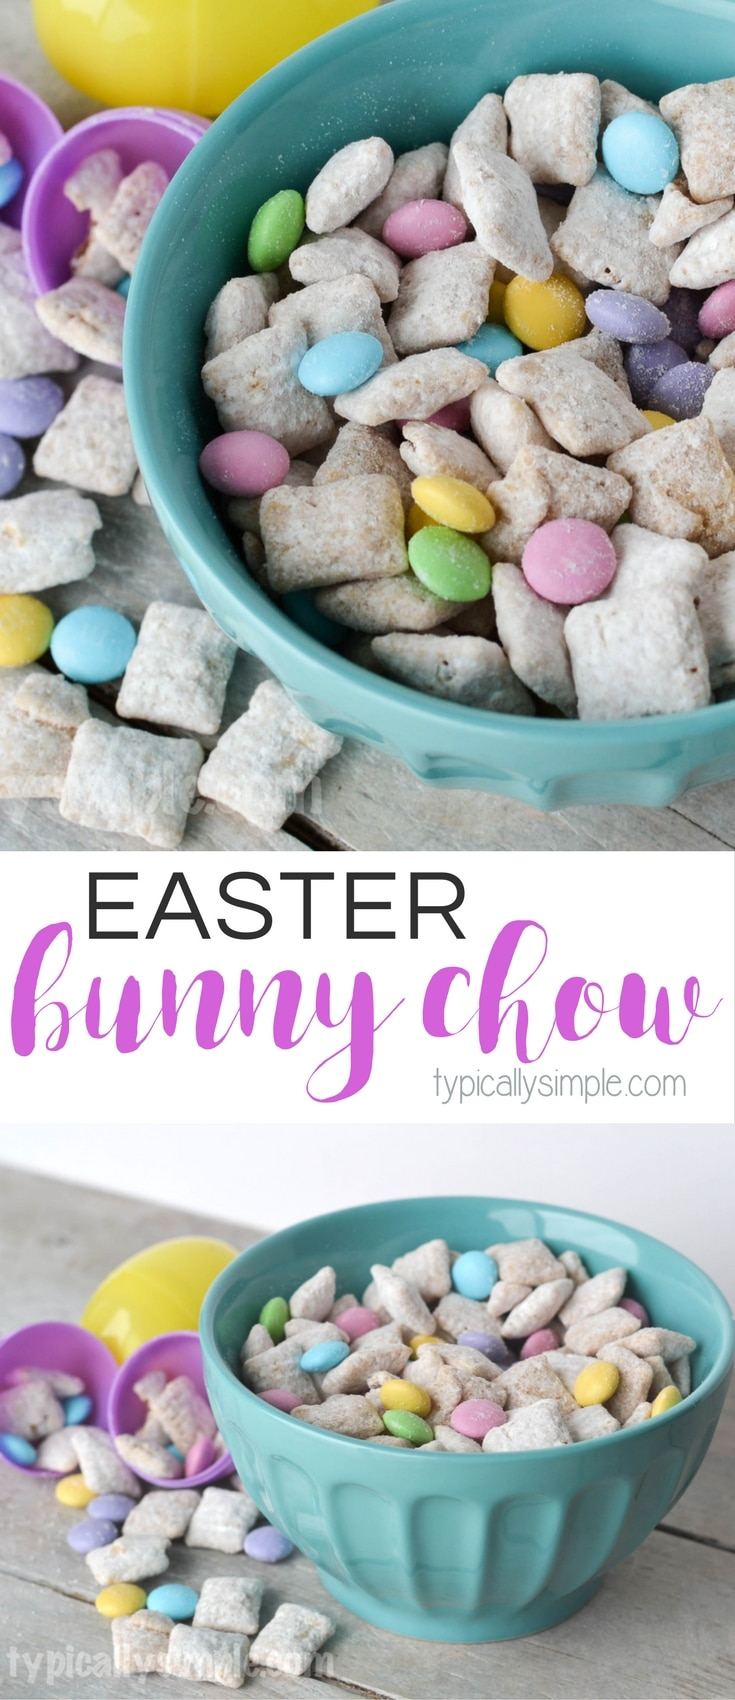 This Easter Bunny Chow recipe is a fun spin on Puppy Chow and makes the perfect treat for Easter or spring!